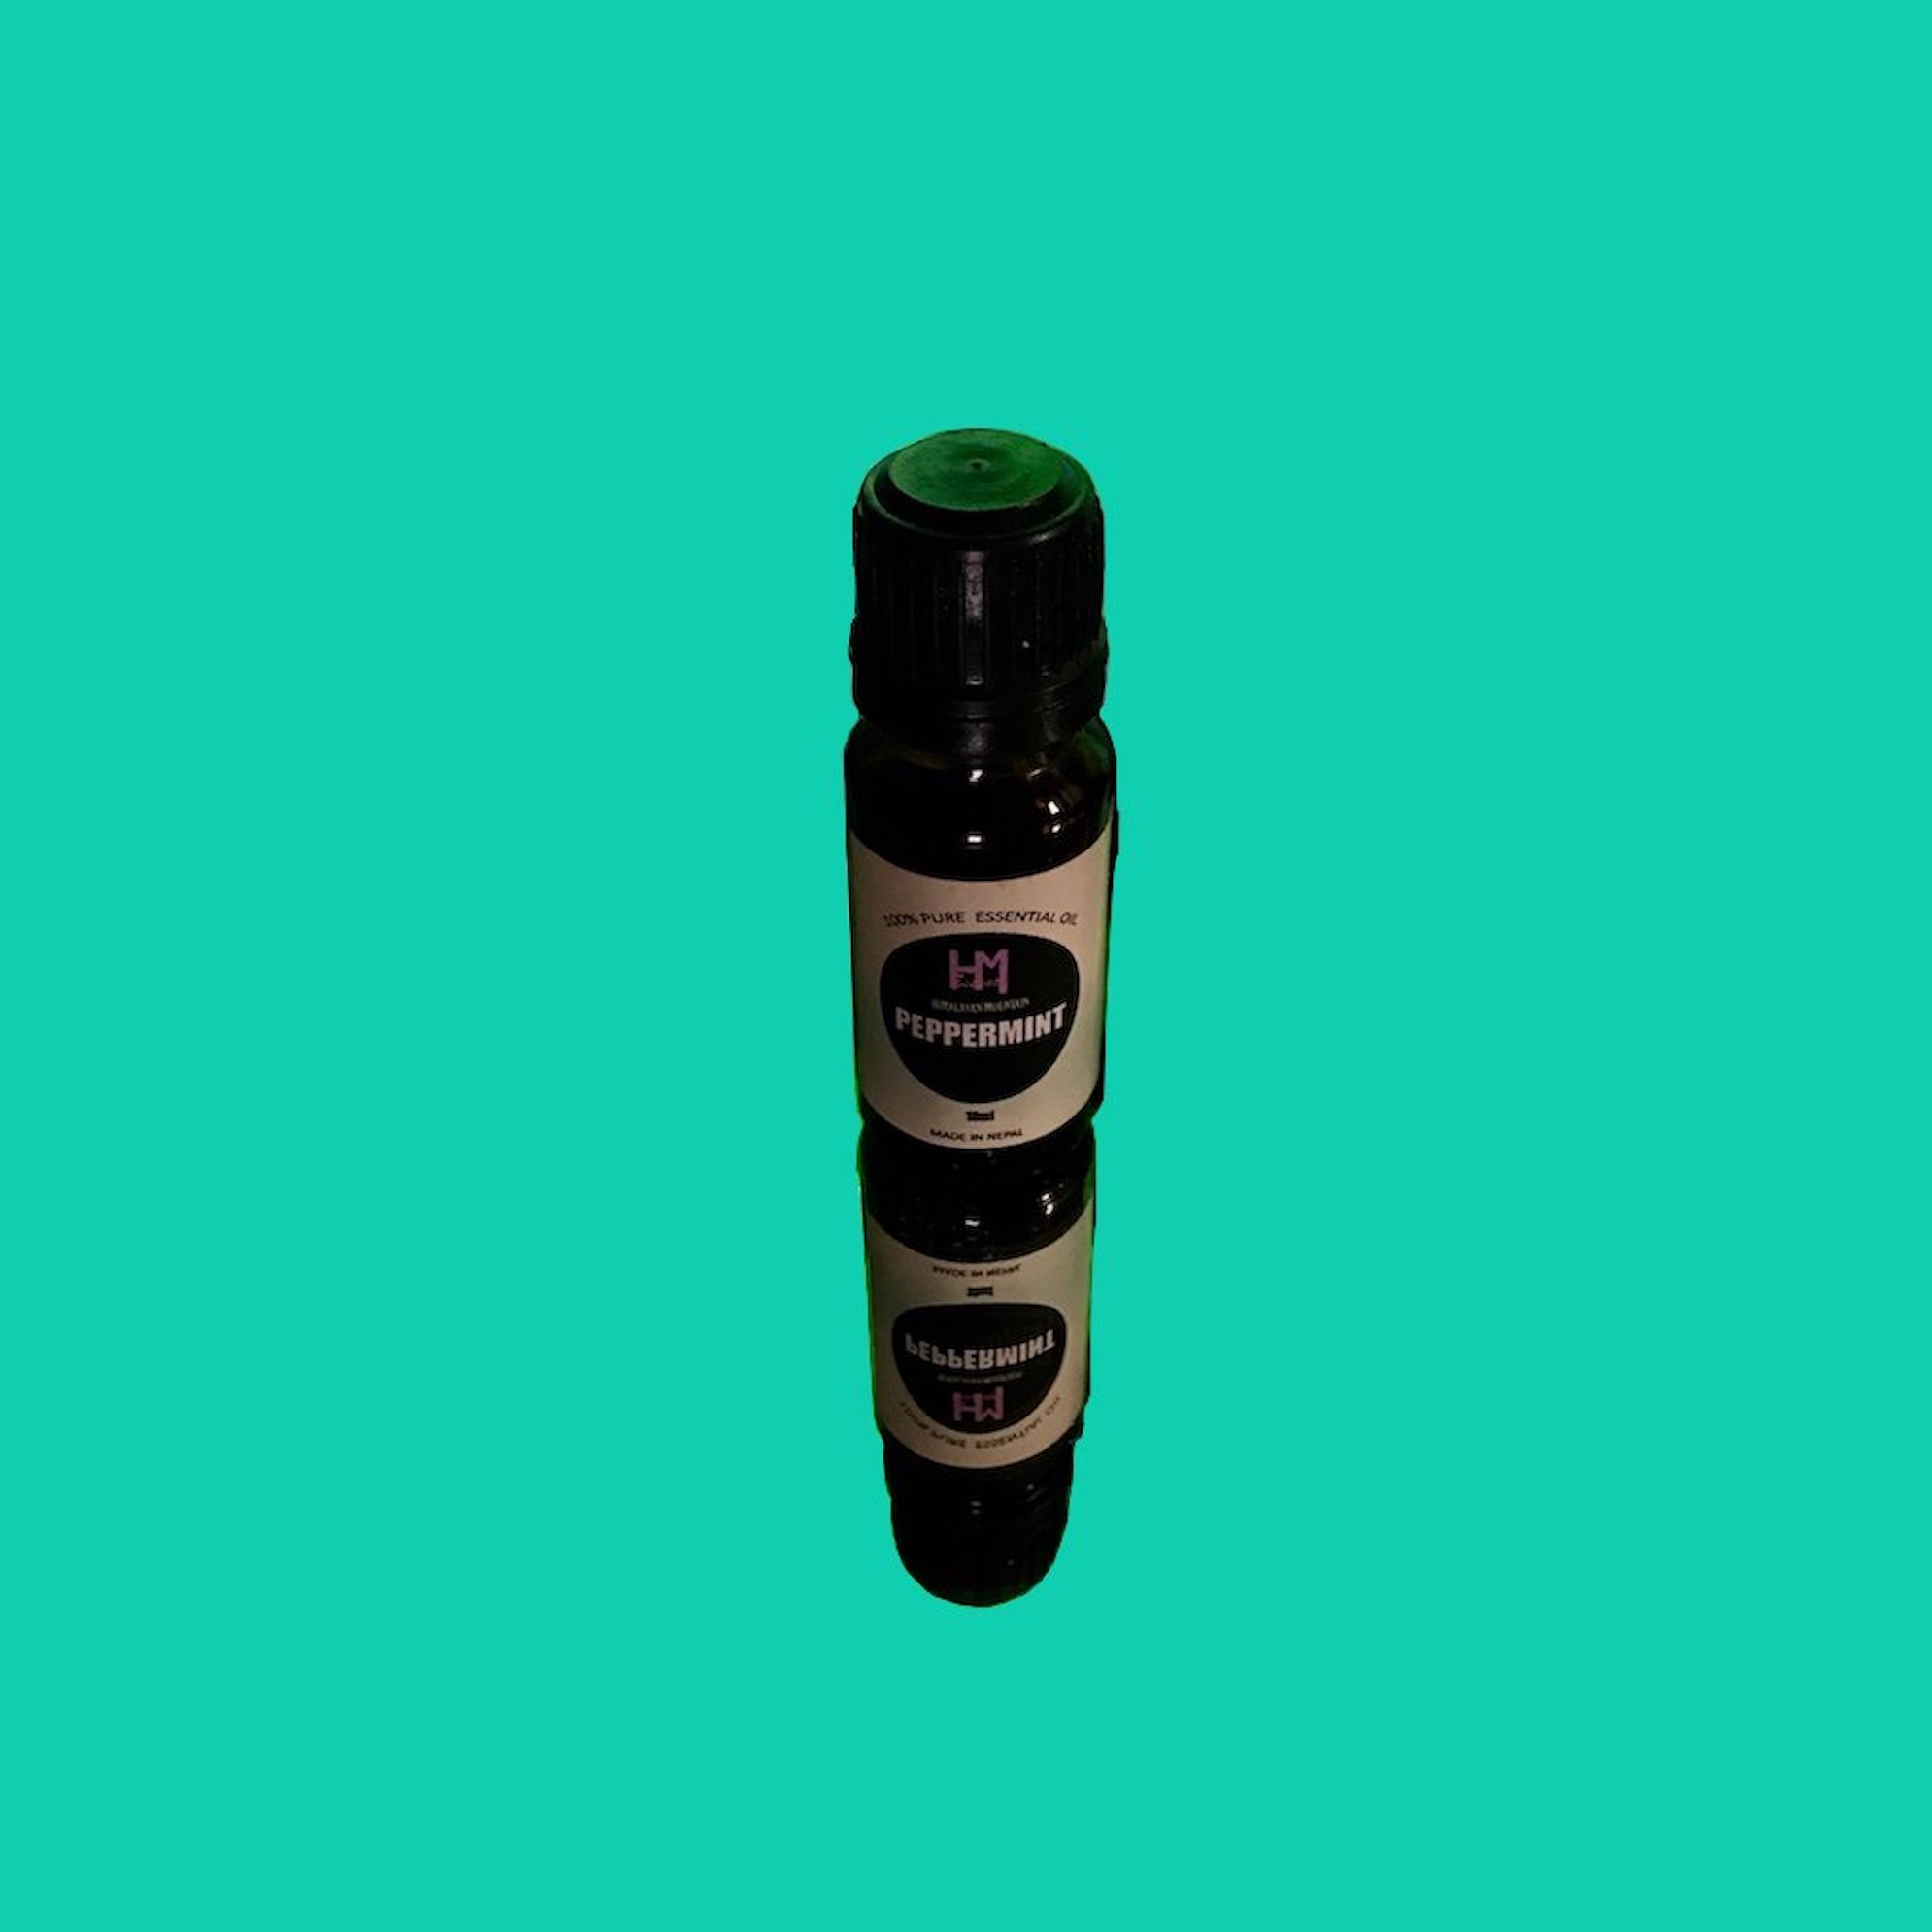 Hm Essence Pure Peppermint Essential Oil - 10ml